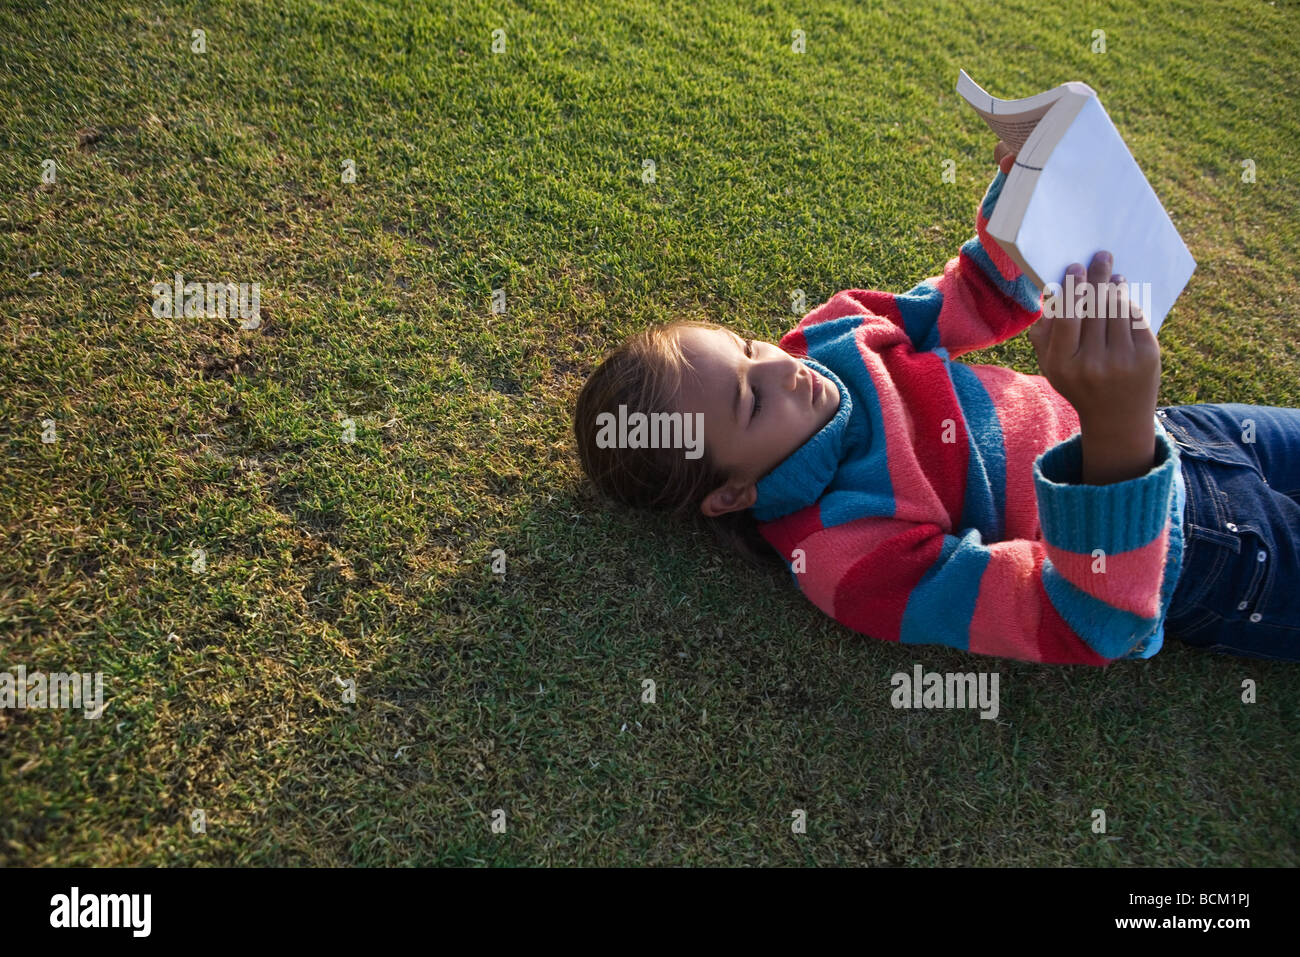 Girl lying on grass reading book, high angle view - Stock Image